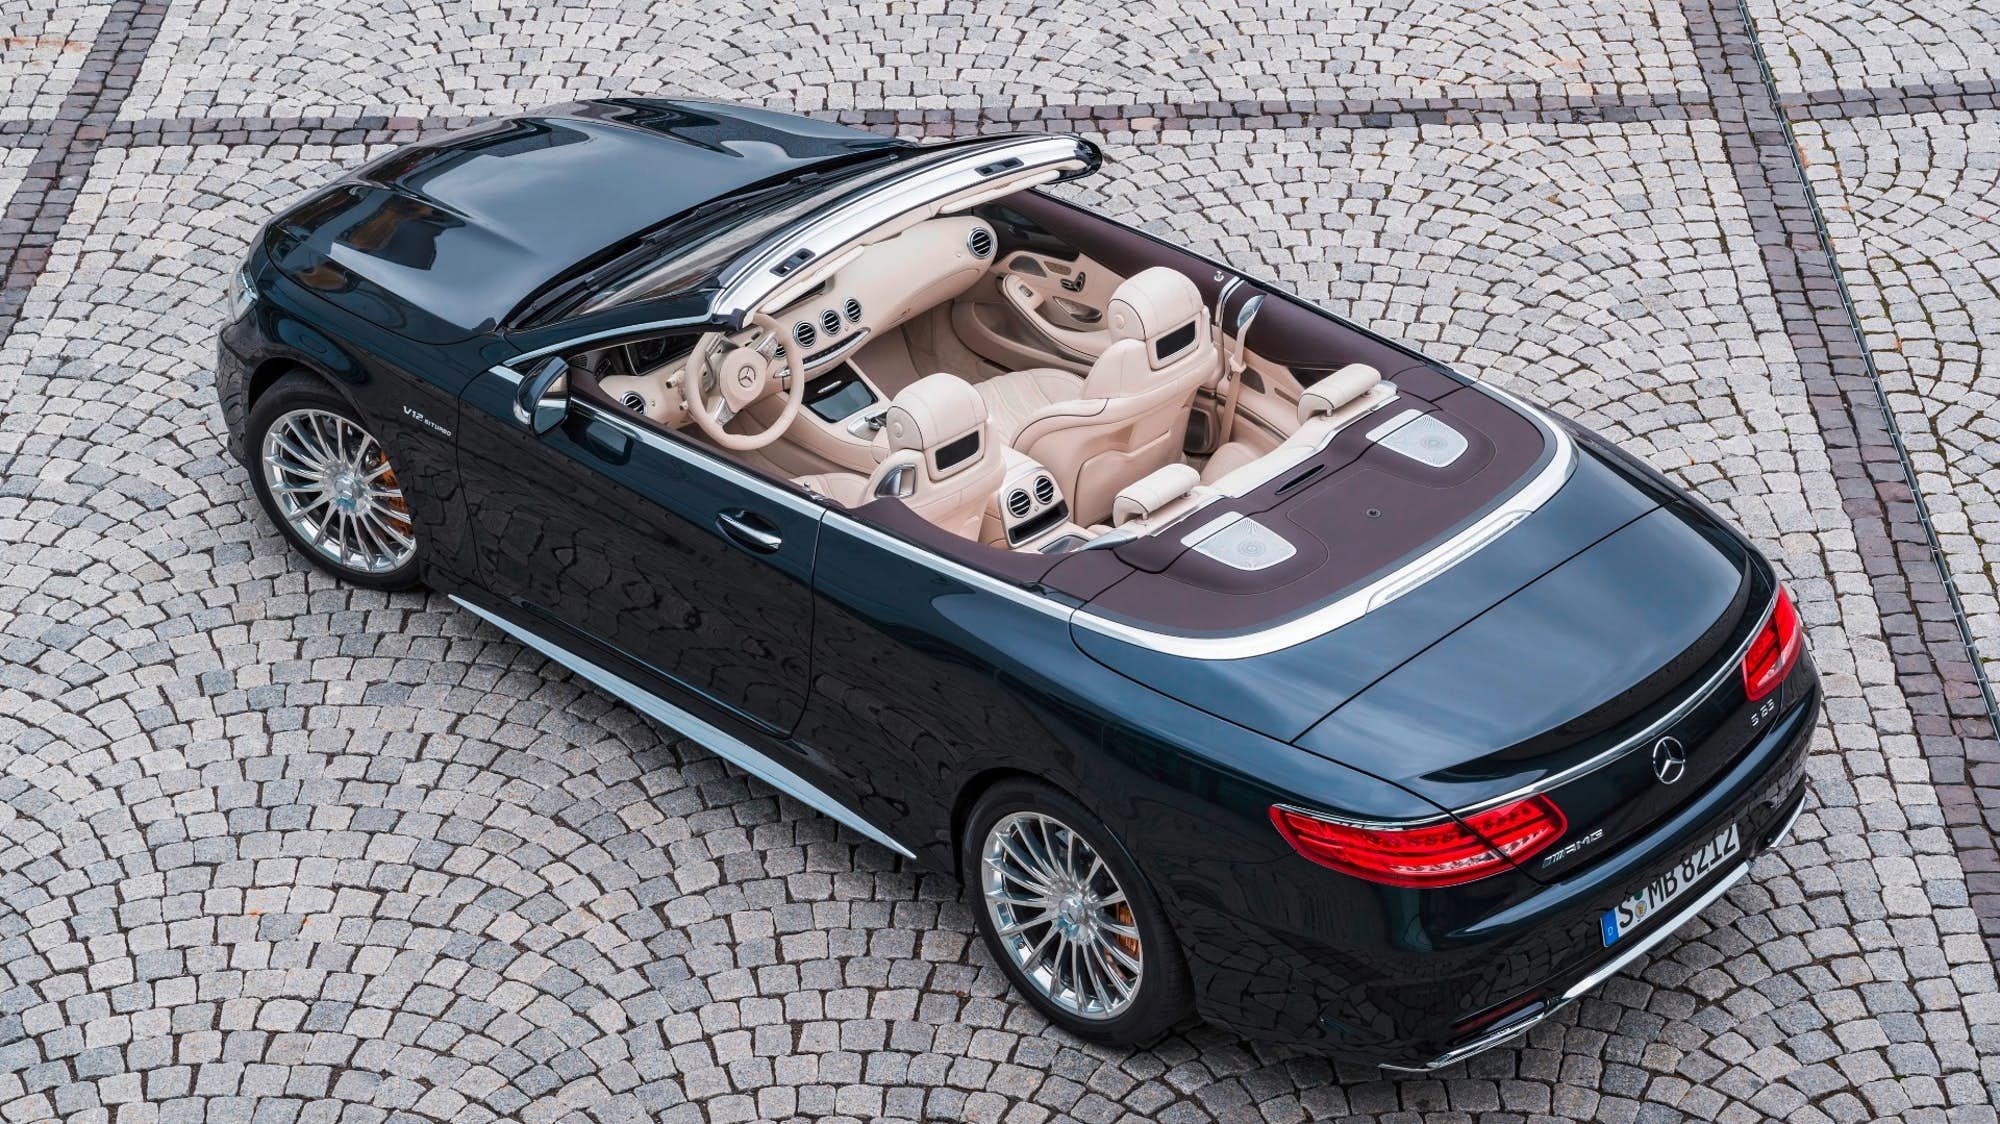 Brabus Rocket 900 Cabrio Becomes World S Fastest Four Seat Convertible Mercedes Benz Convertible Mercedes Convertible Benz